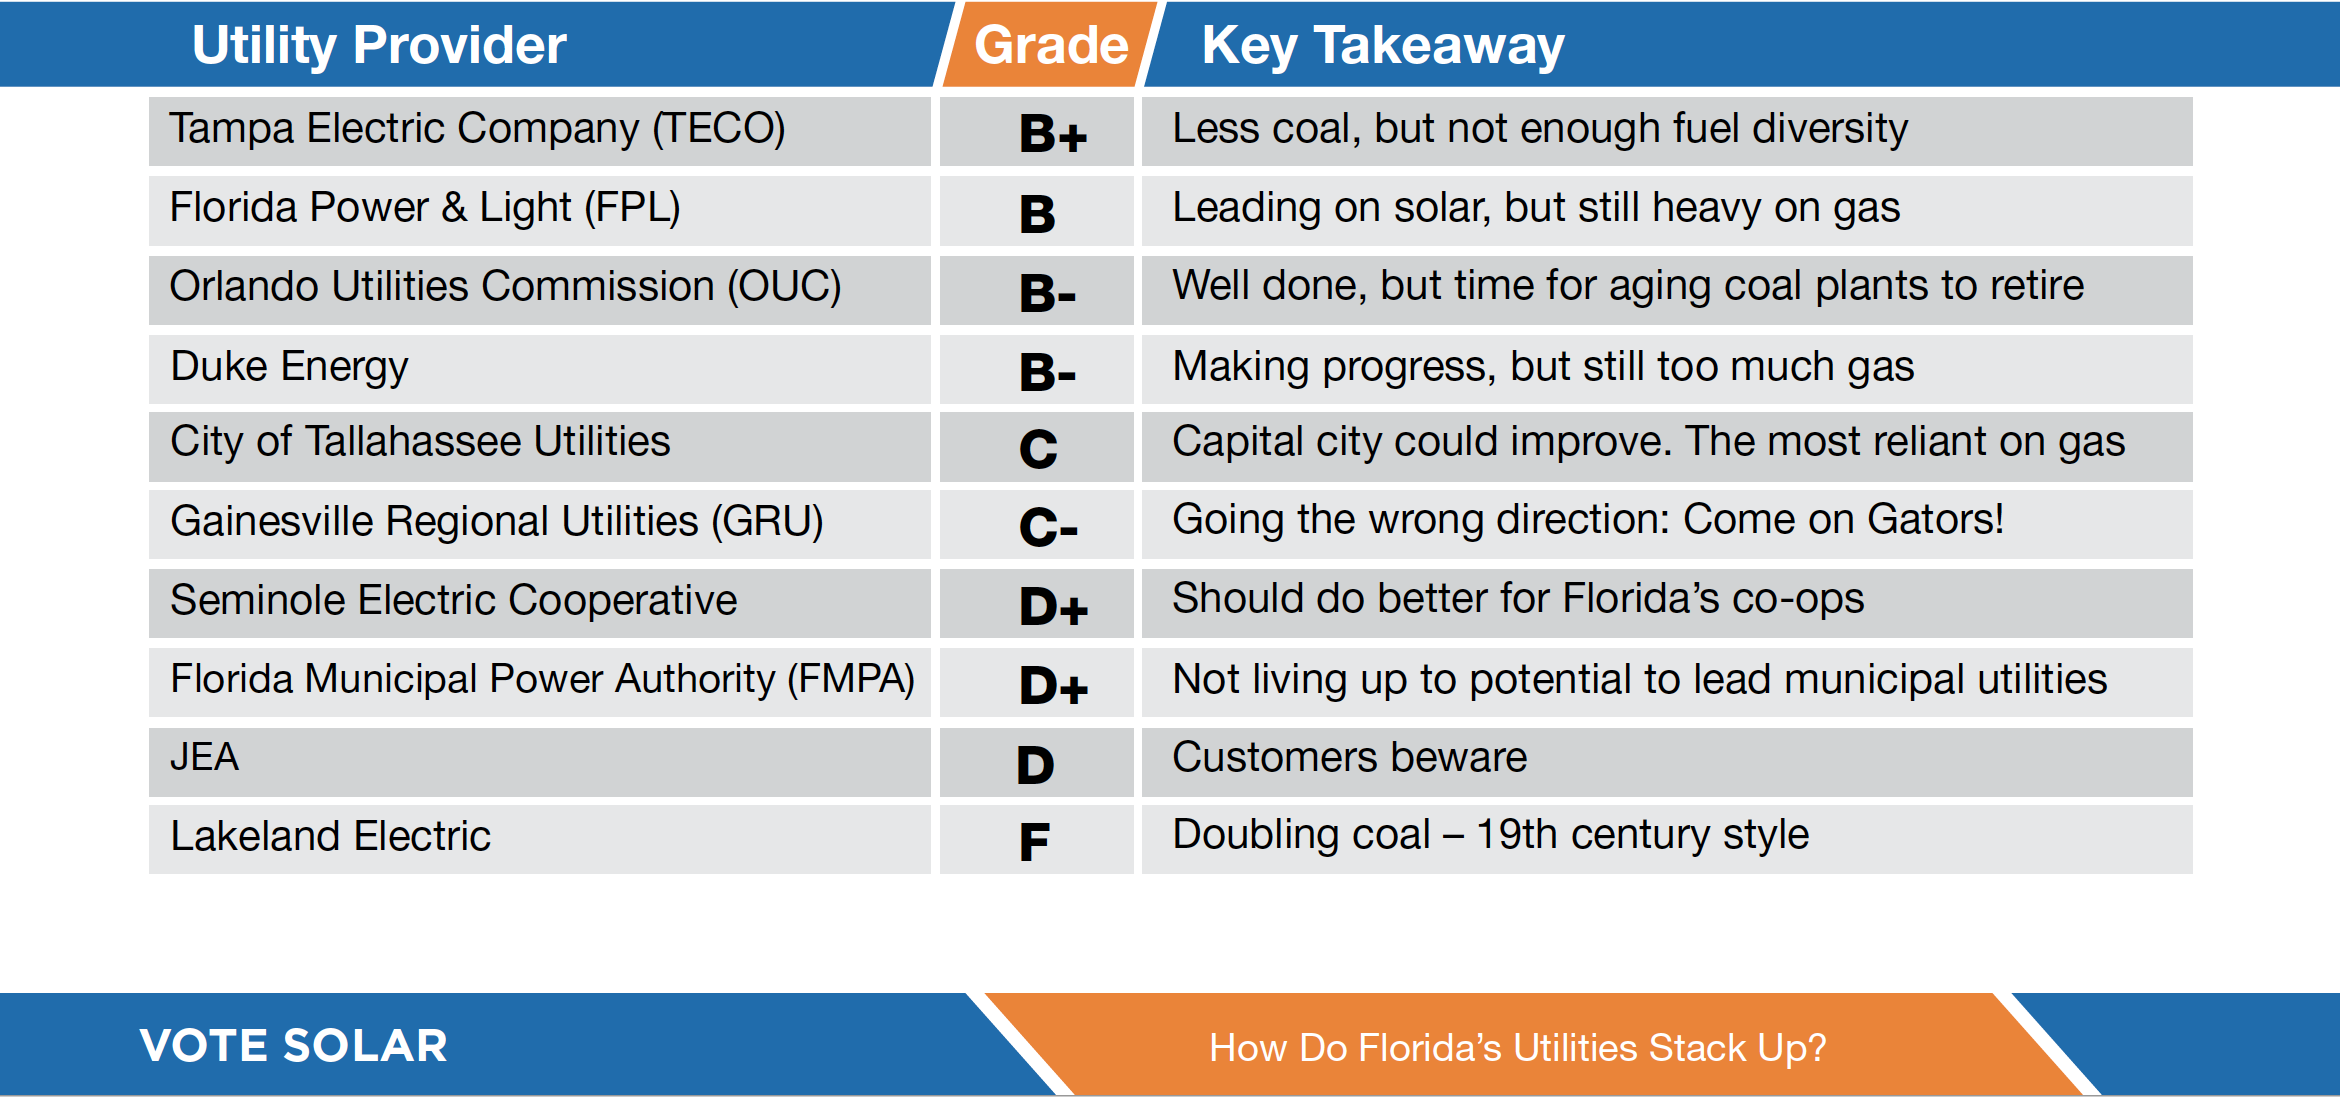 Vote Solar Issues Report Cards for Florida's Largest Utilities Based on Plans for the Future